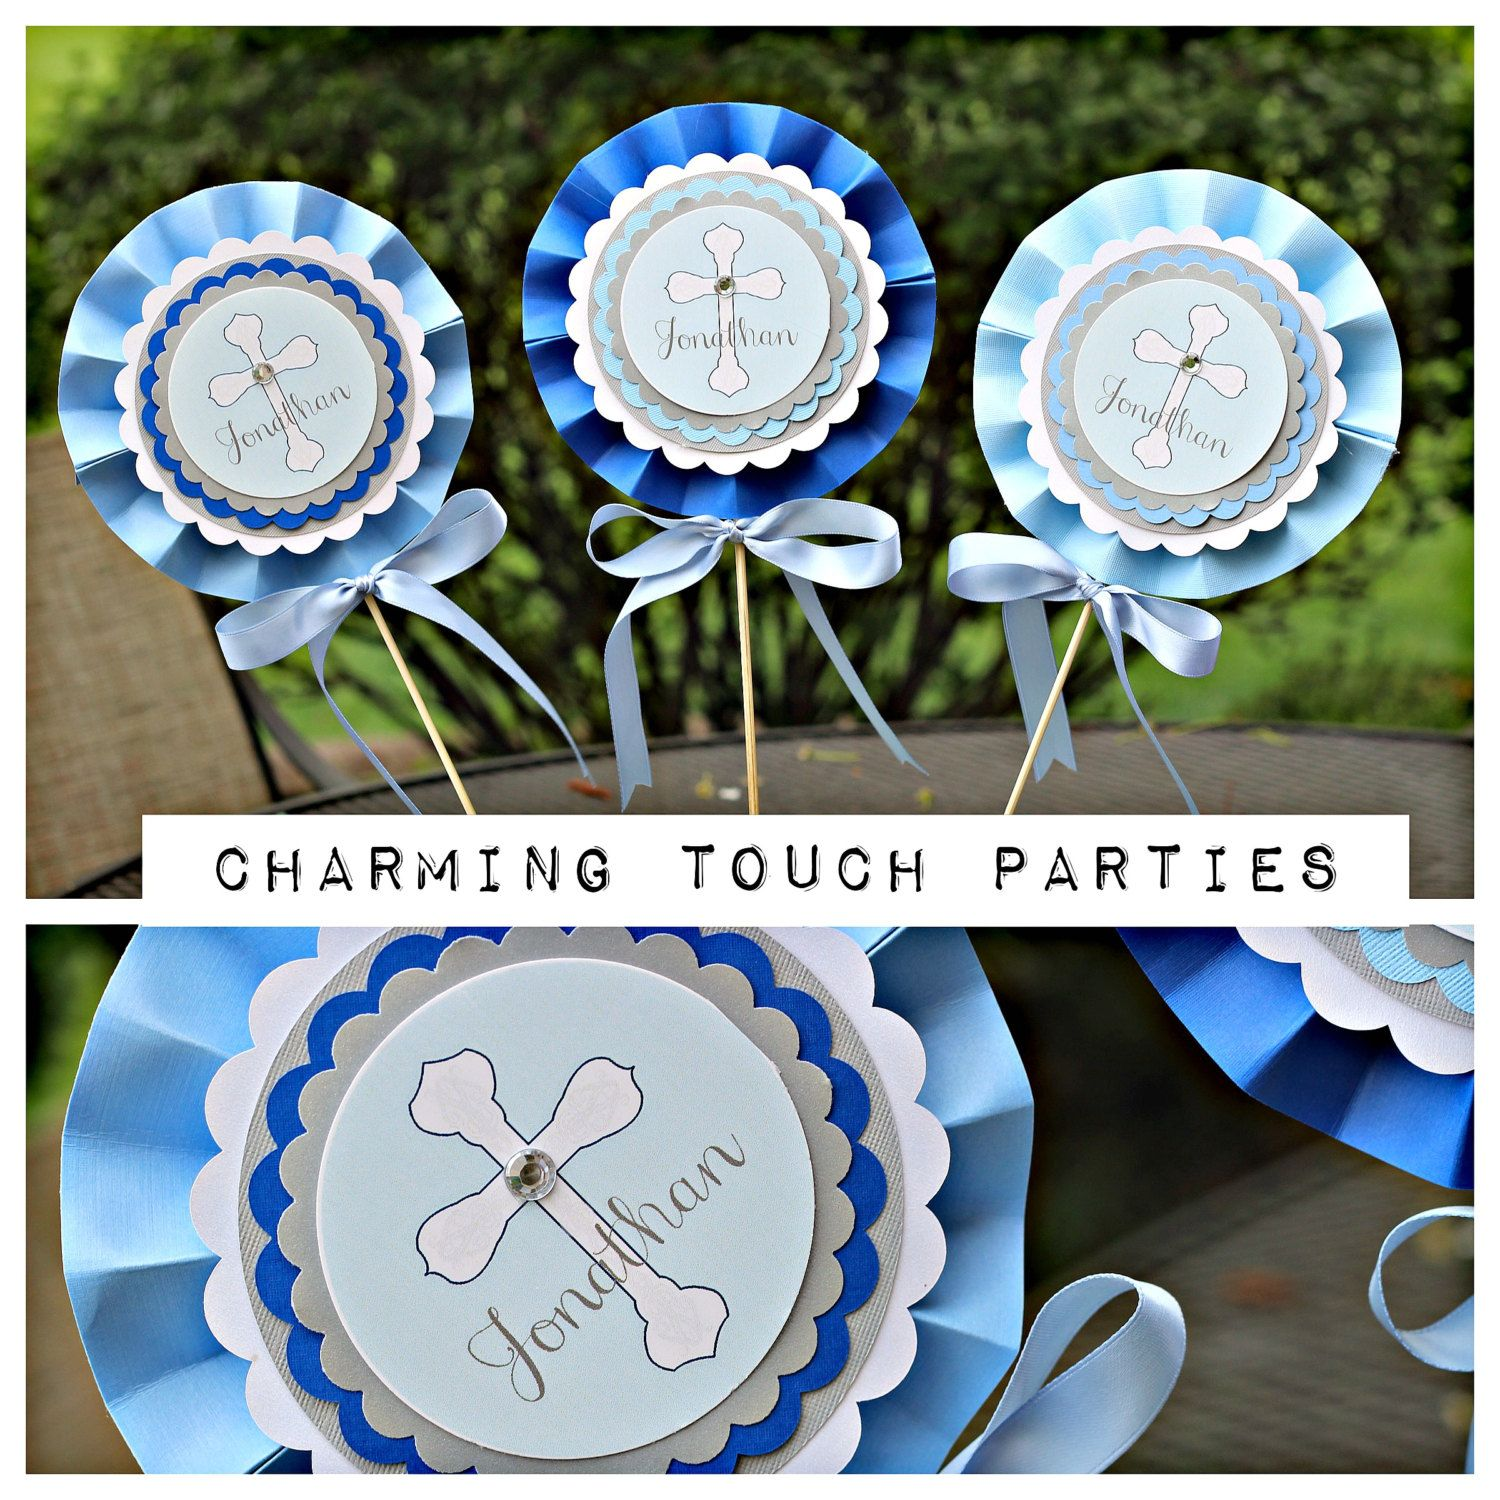 First Communion / Baptism / Christening rosette centerpieces by Charming Touch Parties.  Shades of blue, grey and ivory shimmer.  Pack of 3. by CharmingTouchParties on Etsy